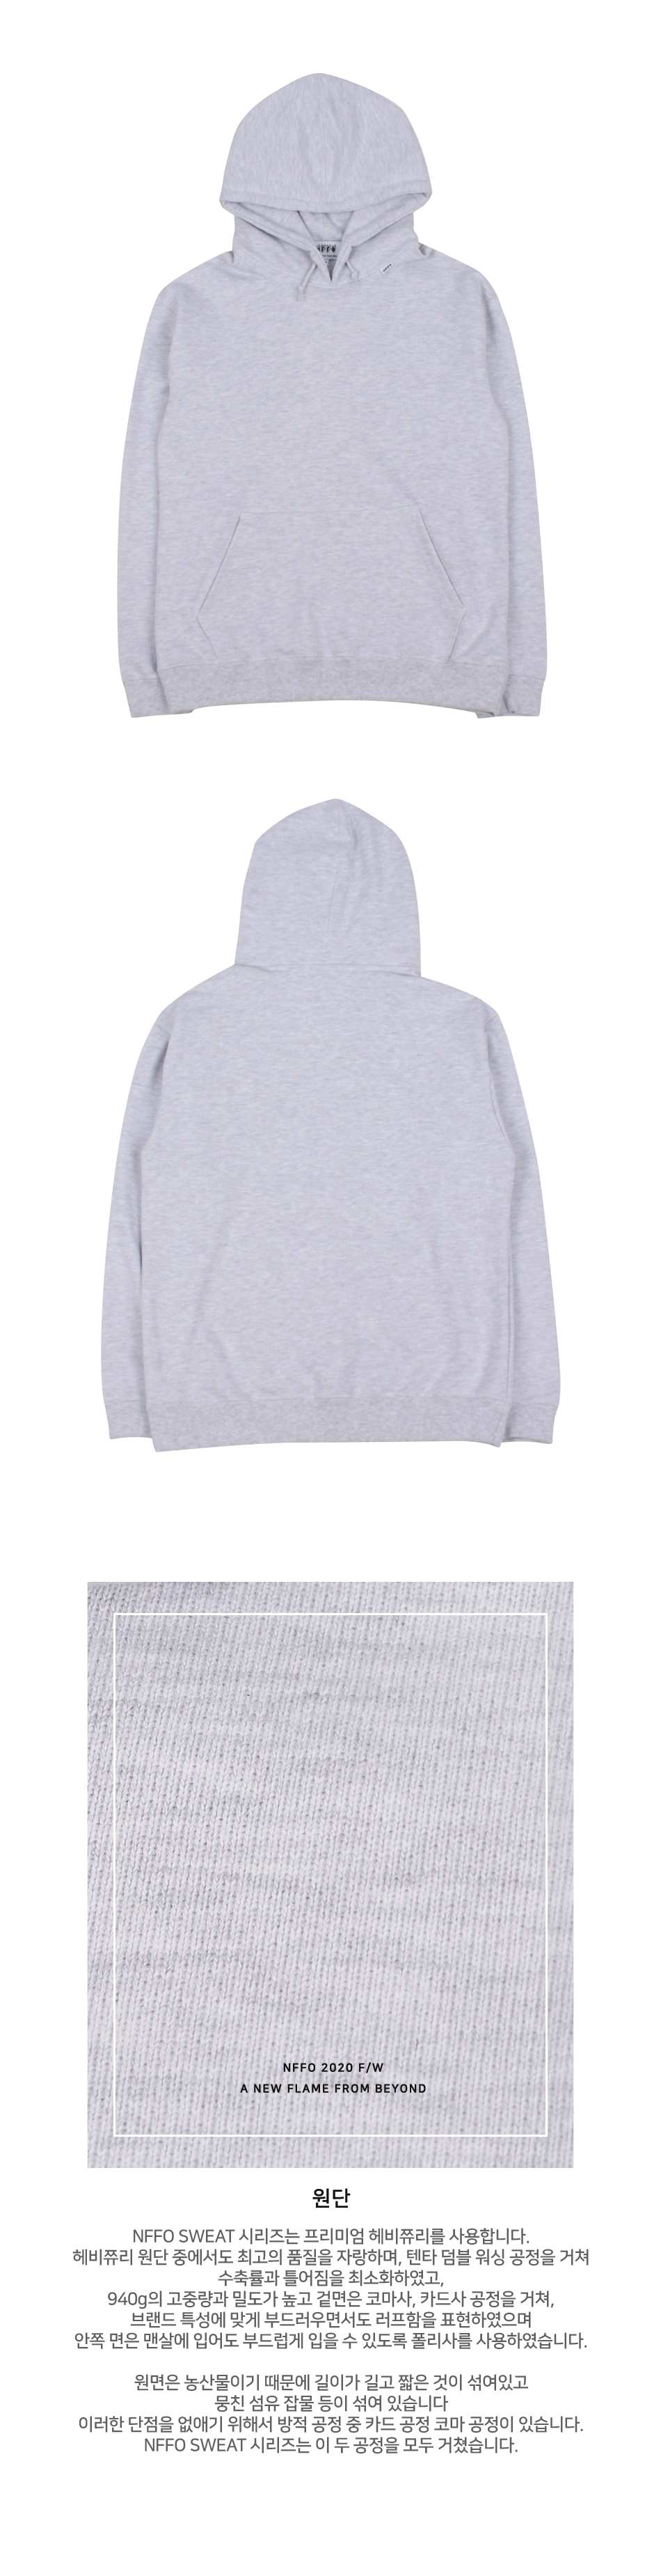 17 NFFO 2020FW Basic Sweat hoody l-gray 2.jpg